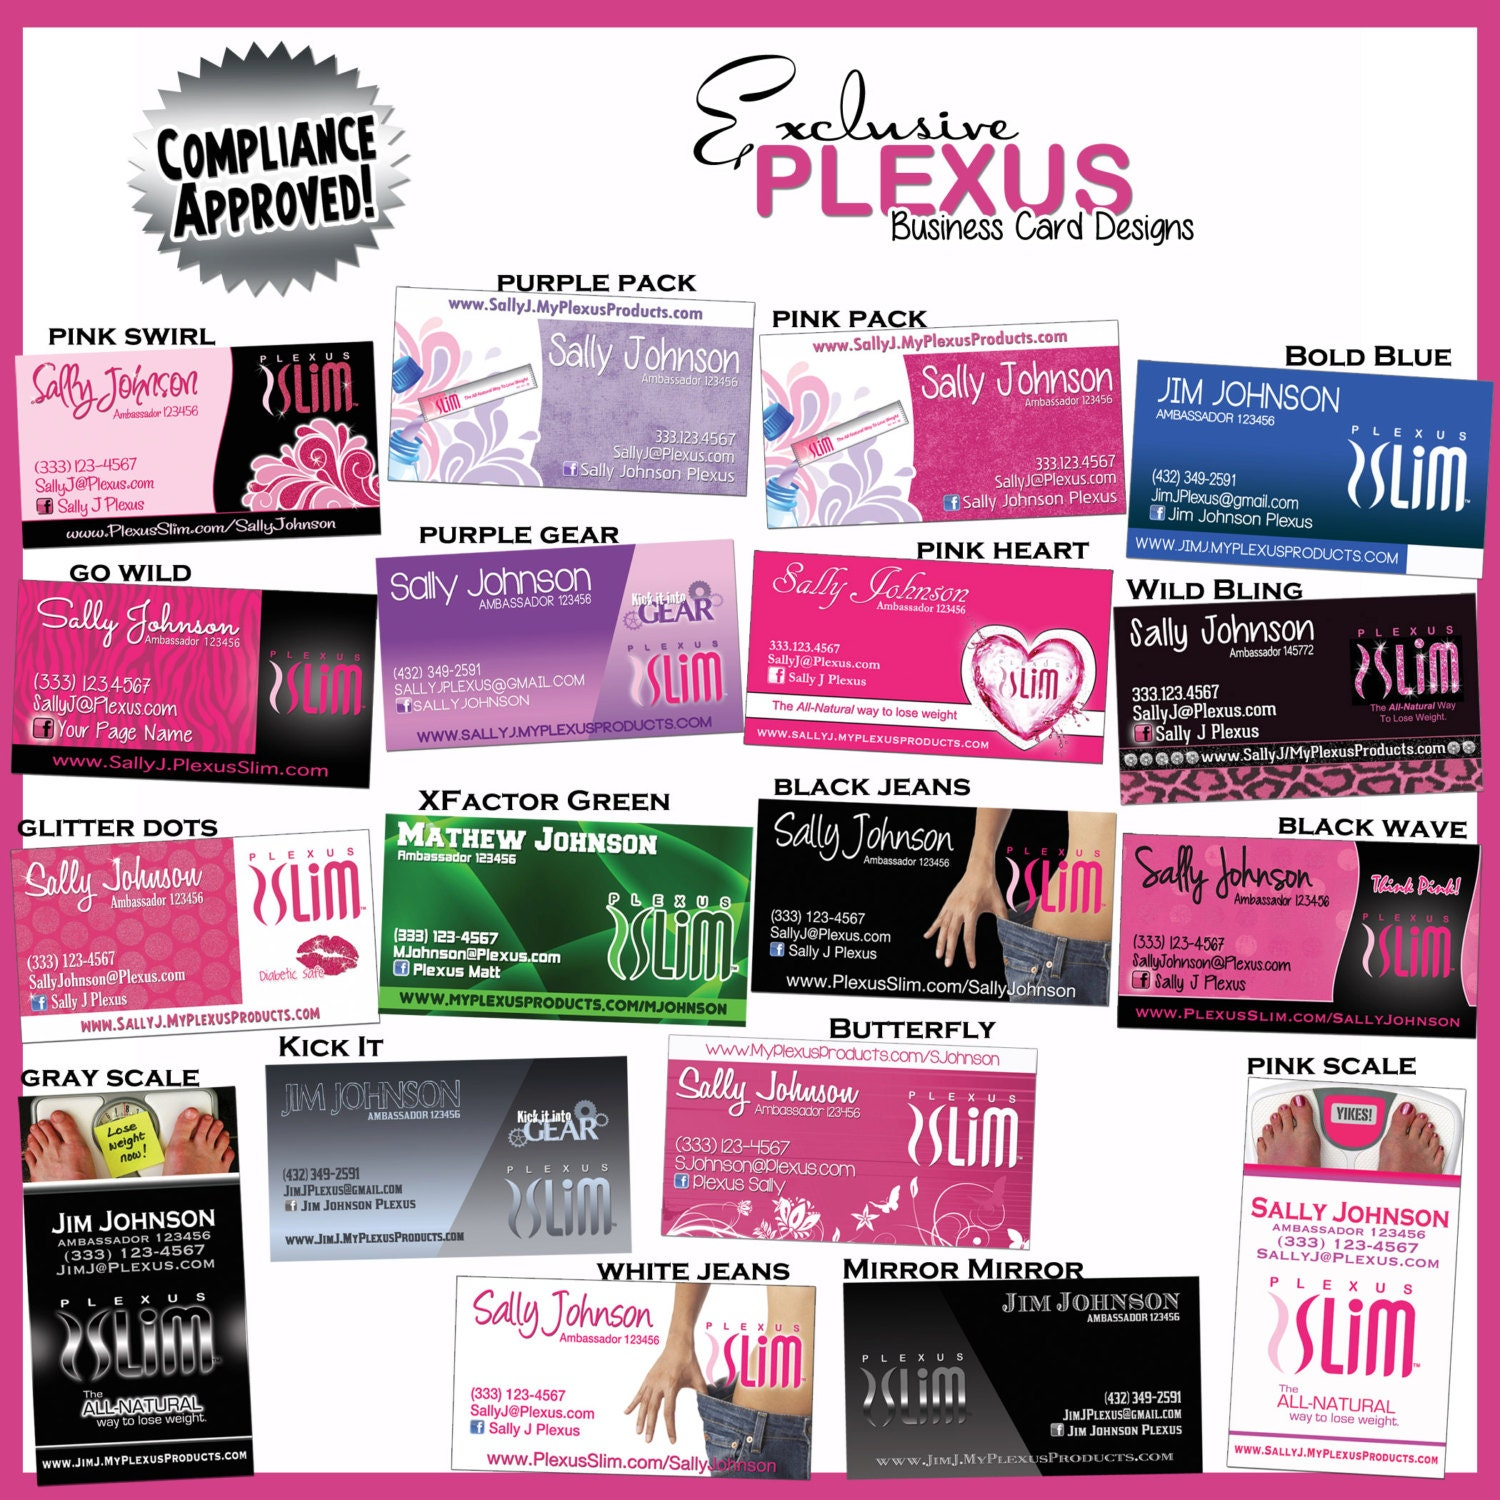 how to order plexus slim